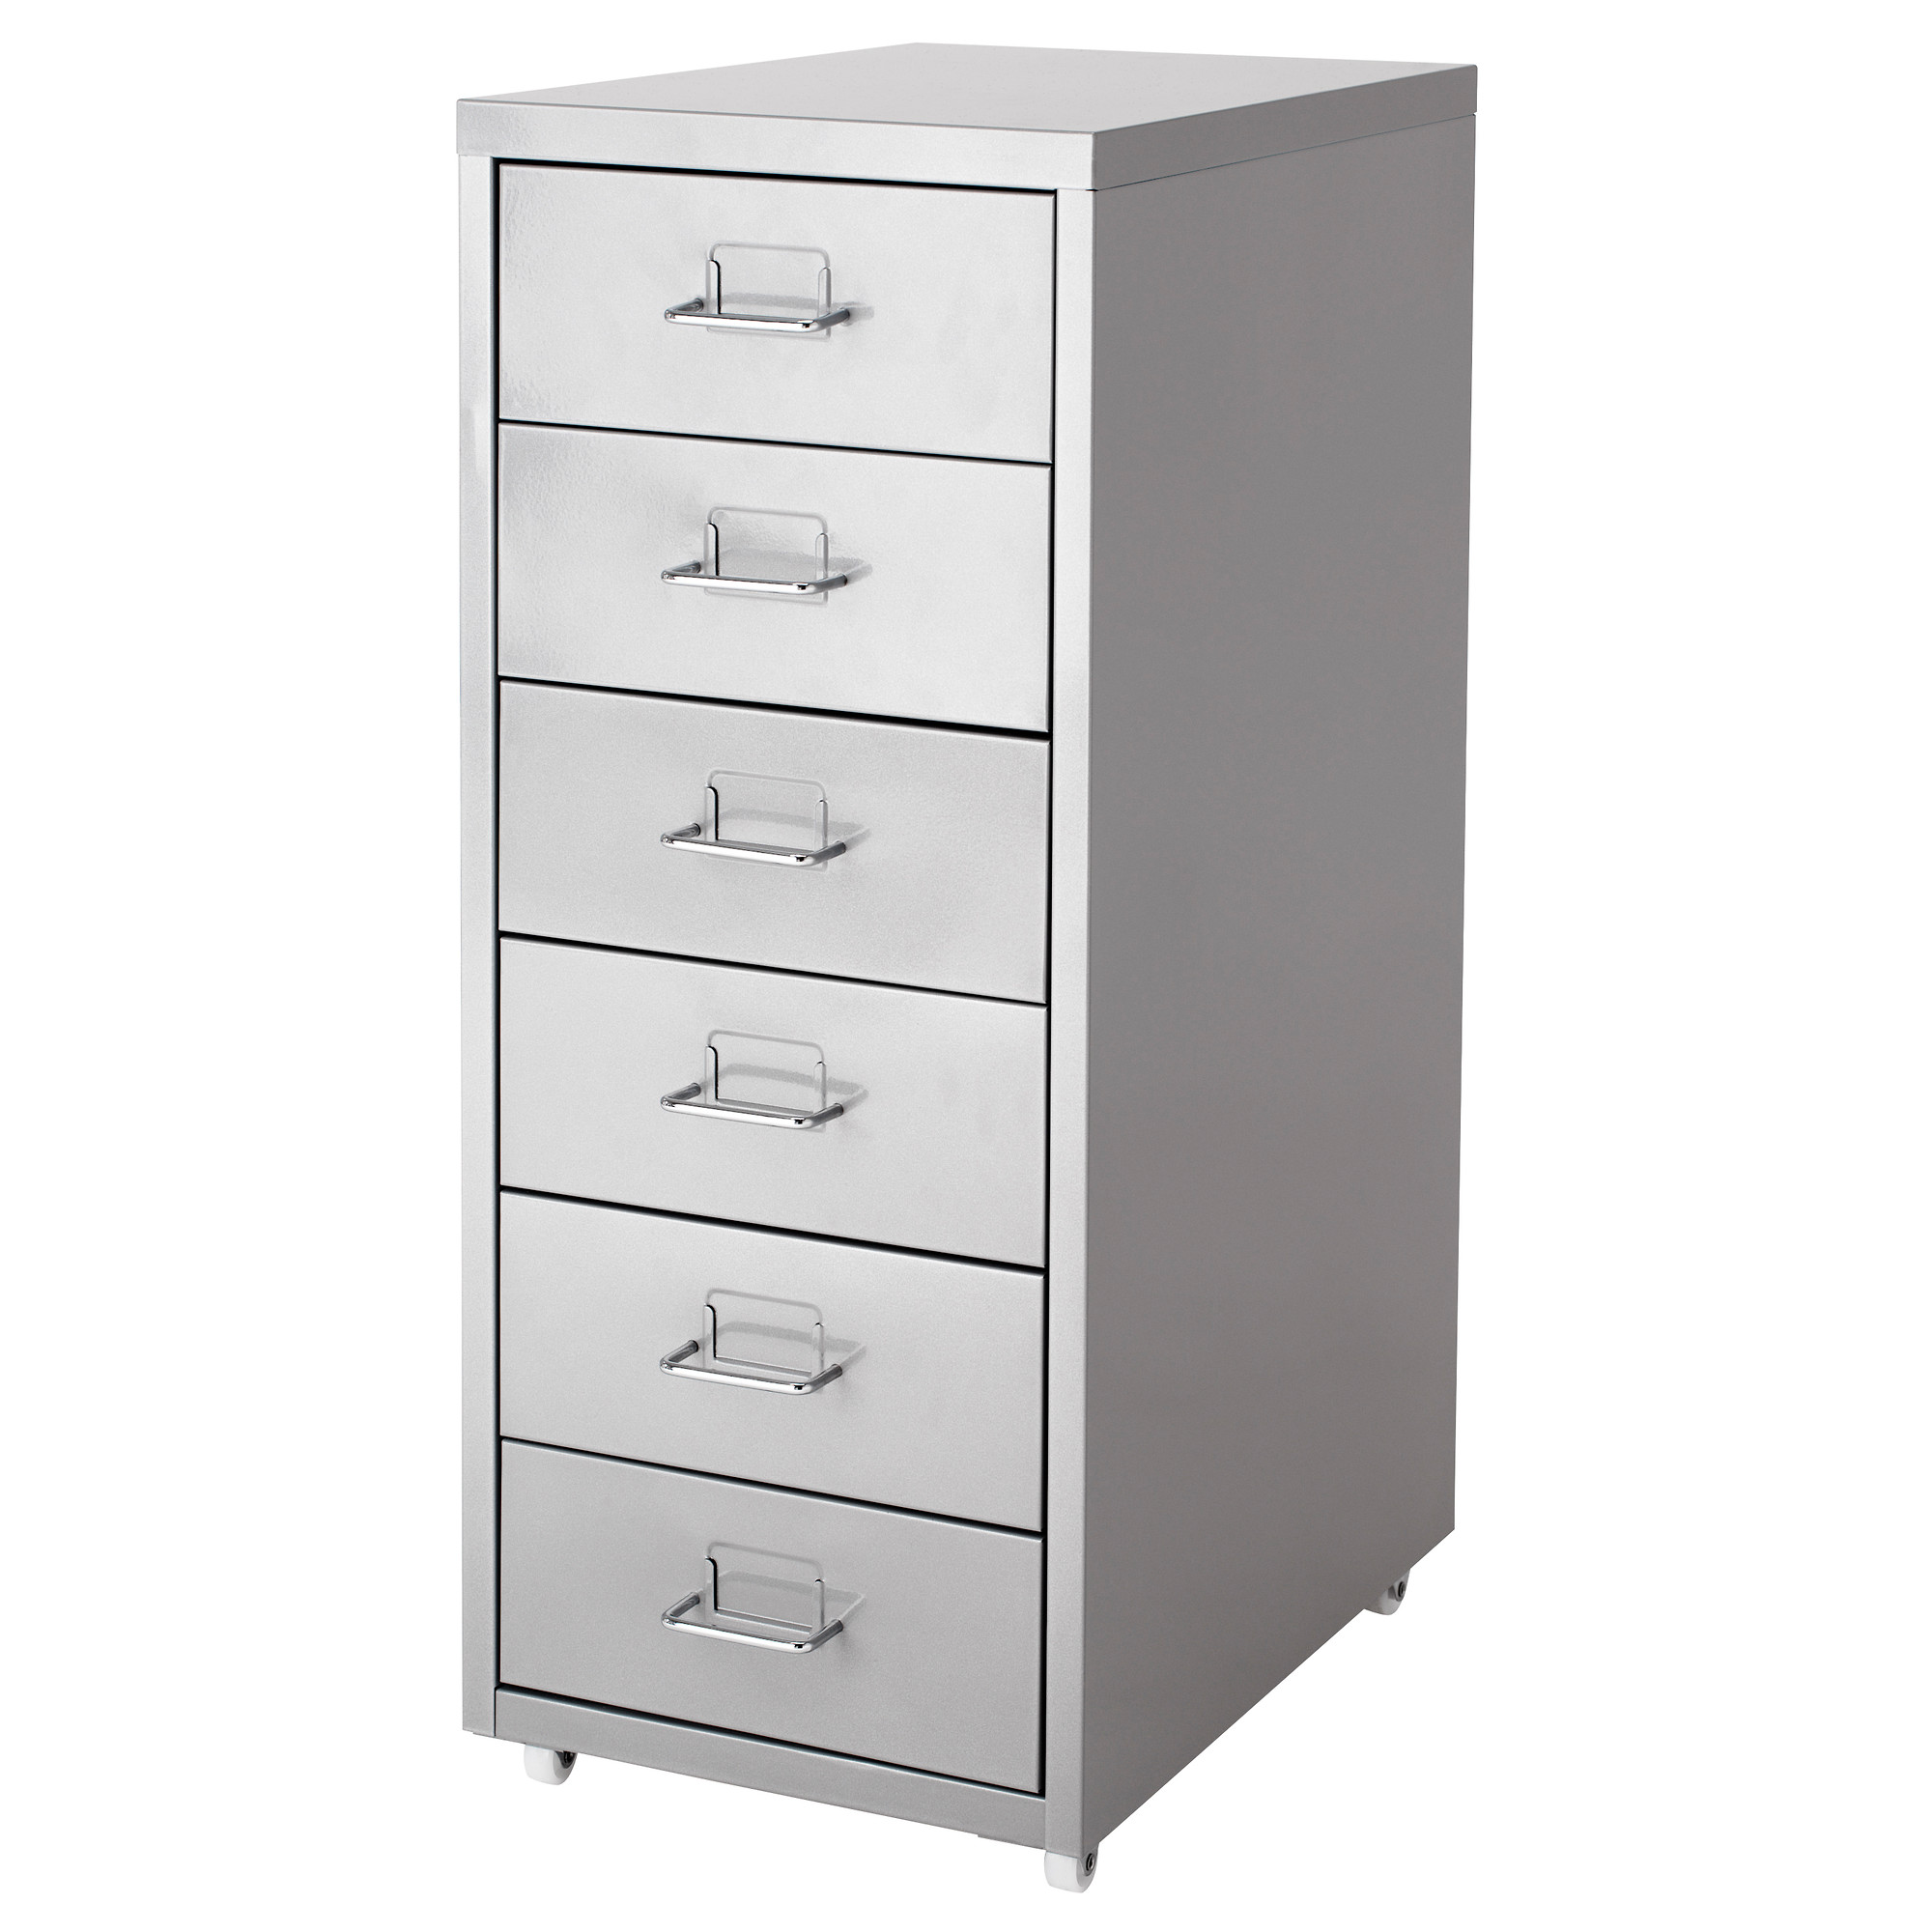 metal filing cabinet ikea roselawnlutheran. Black Bedroom Furniture Sets. Home Design Ideas